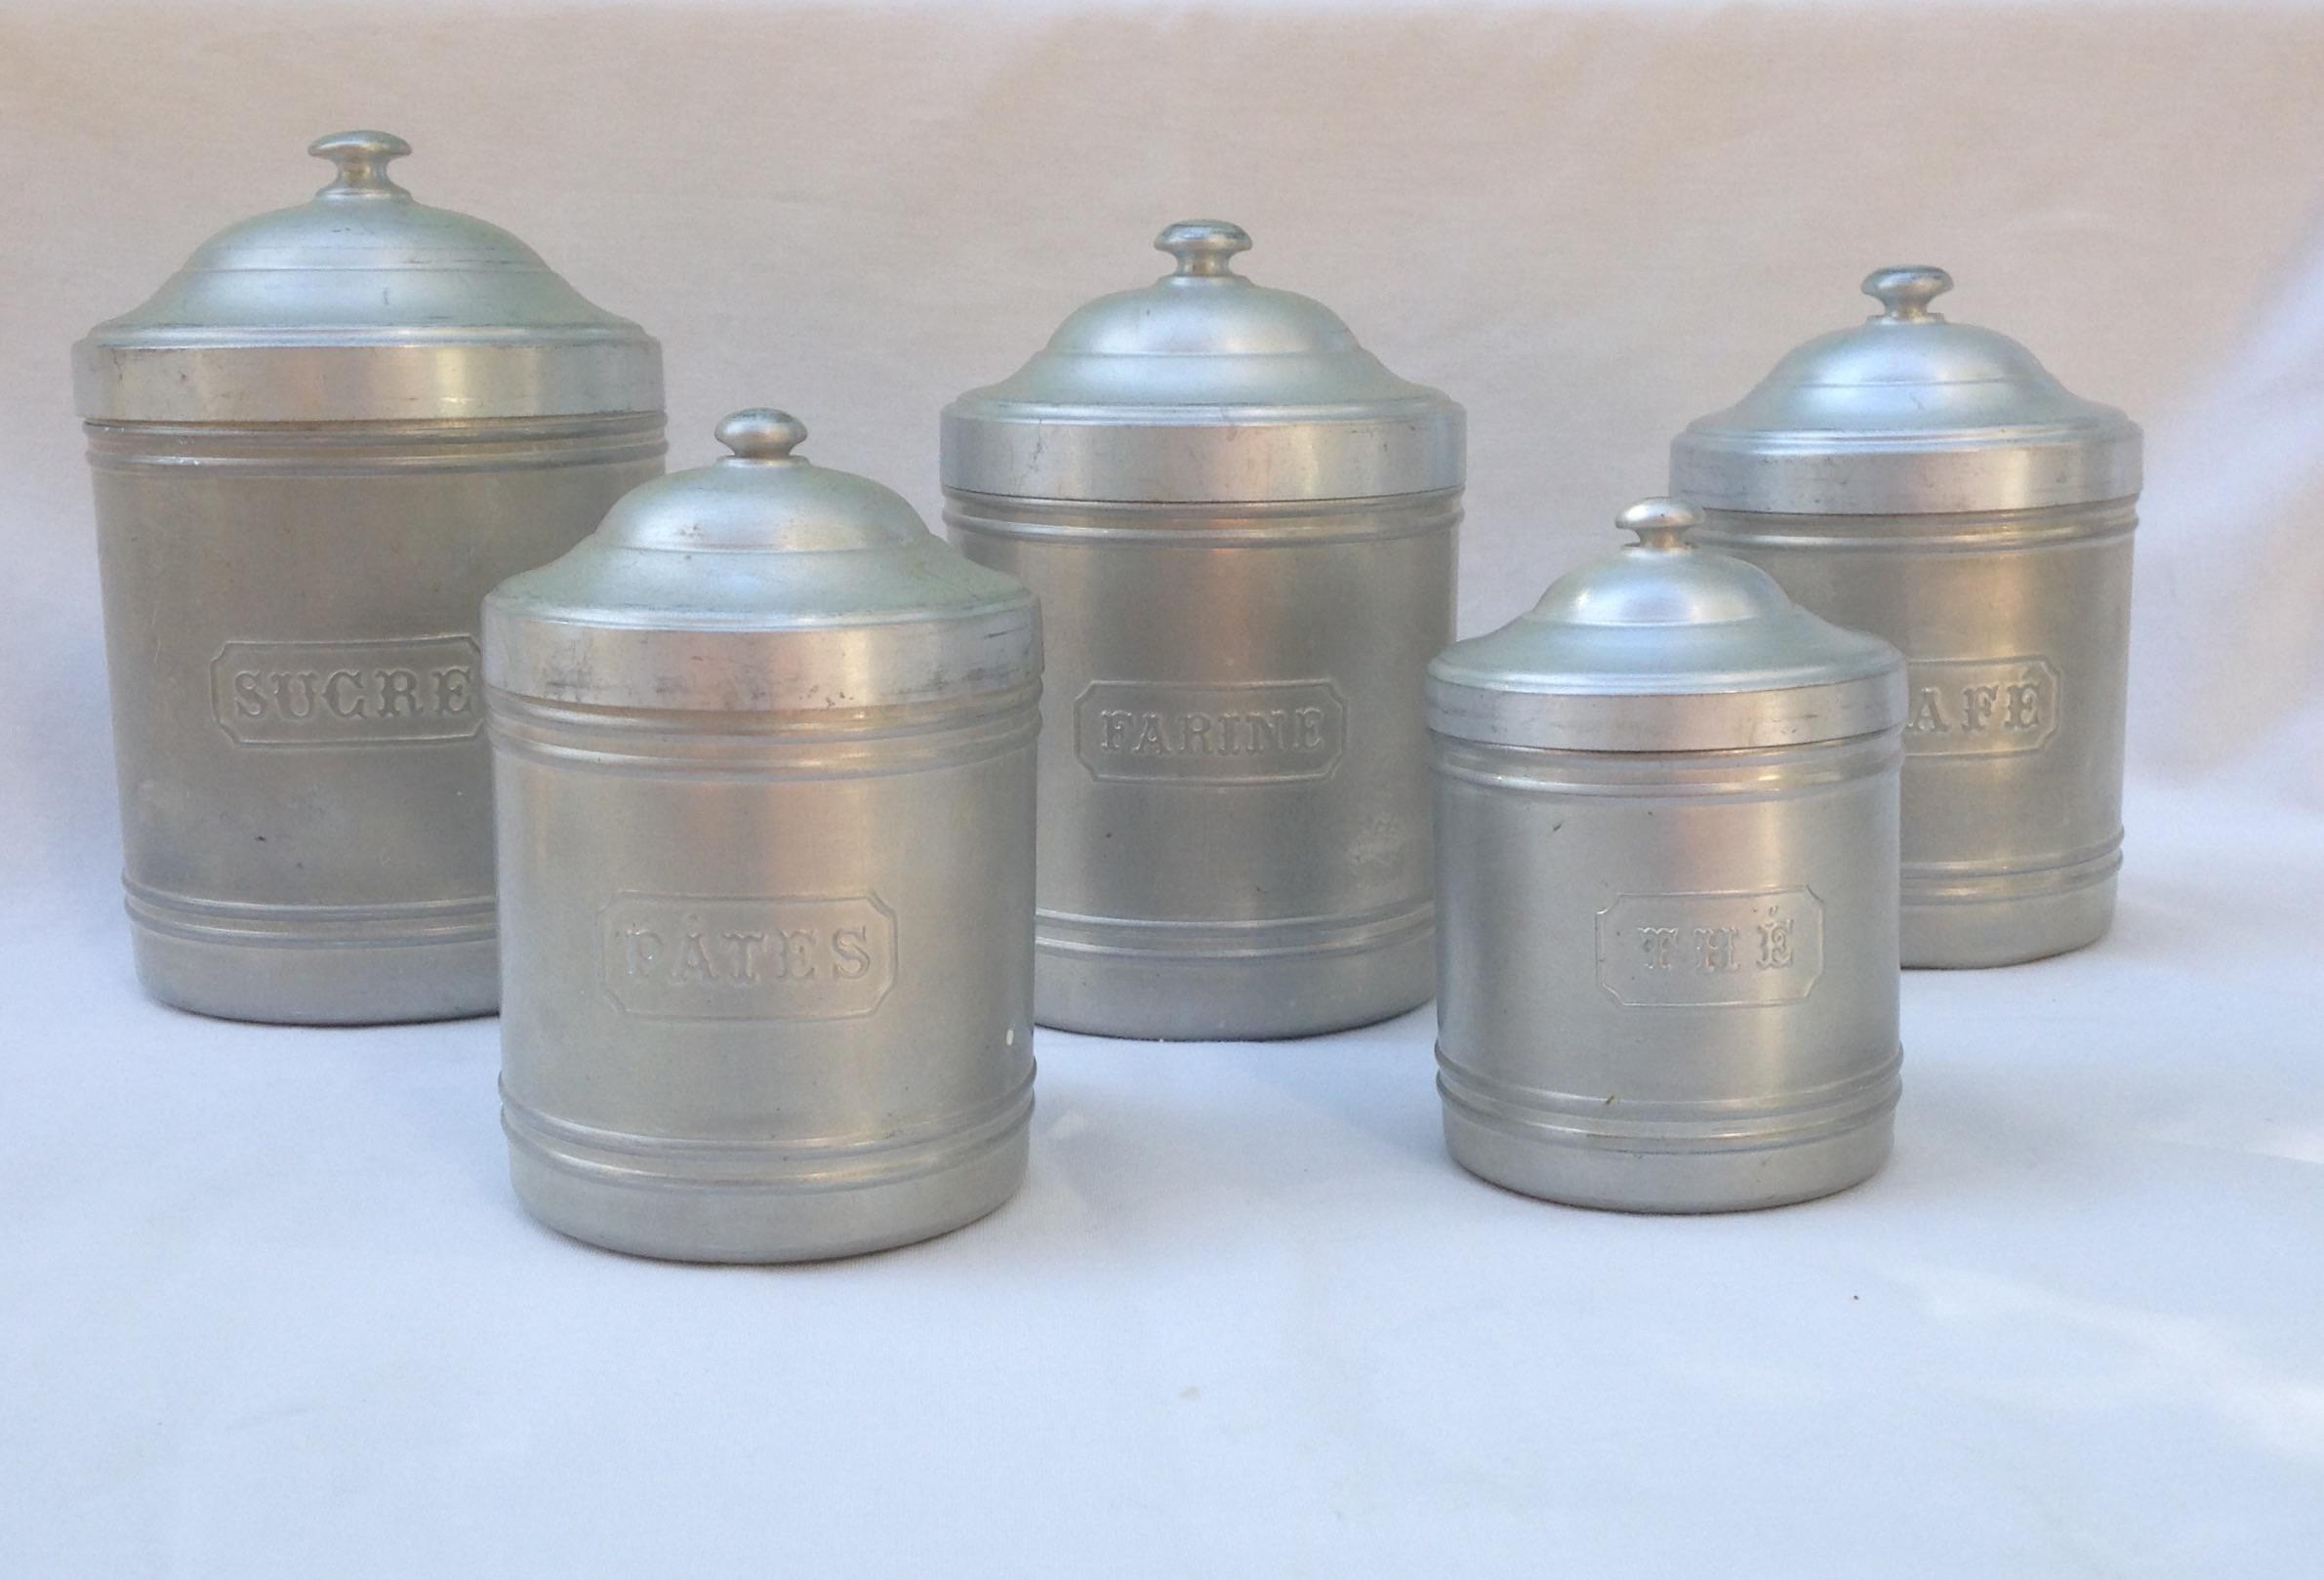 Vintage French Kitchen Canisters   Set Of 5   Image 2 Of 9